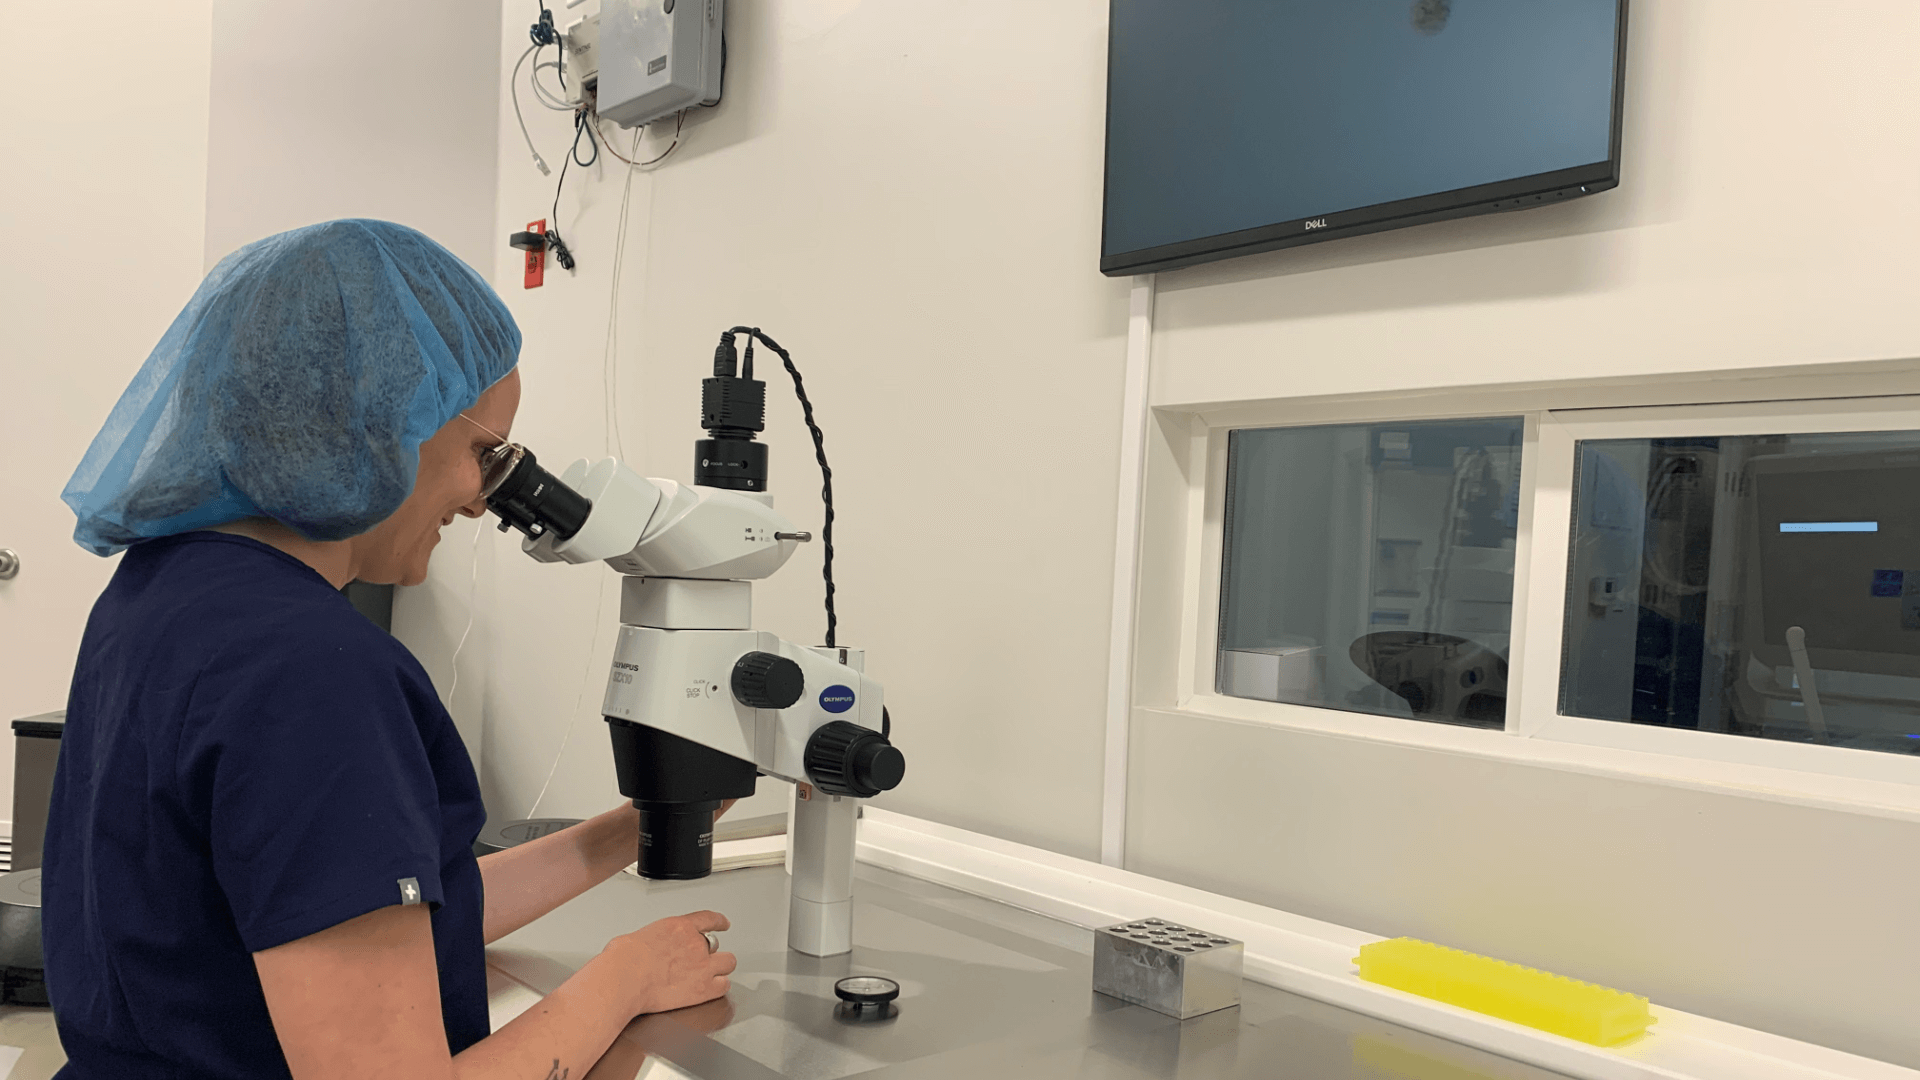 Embryologist in the lab